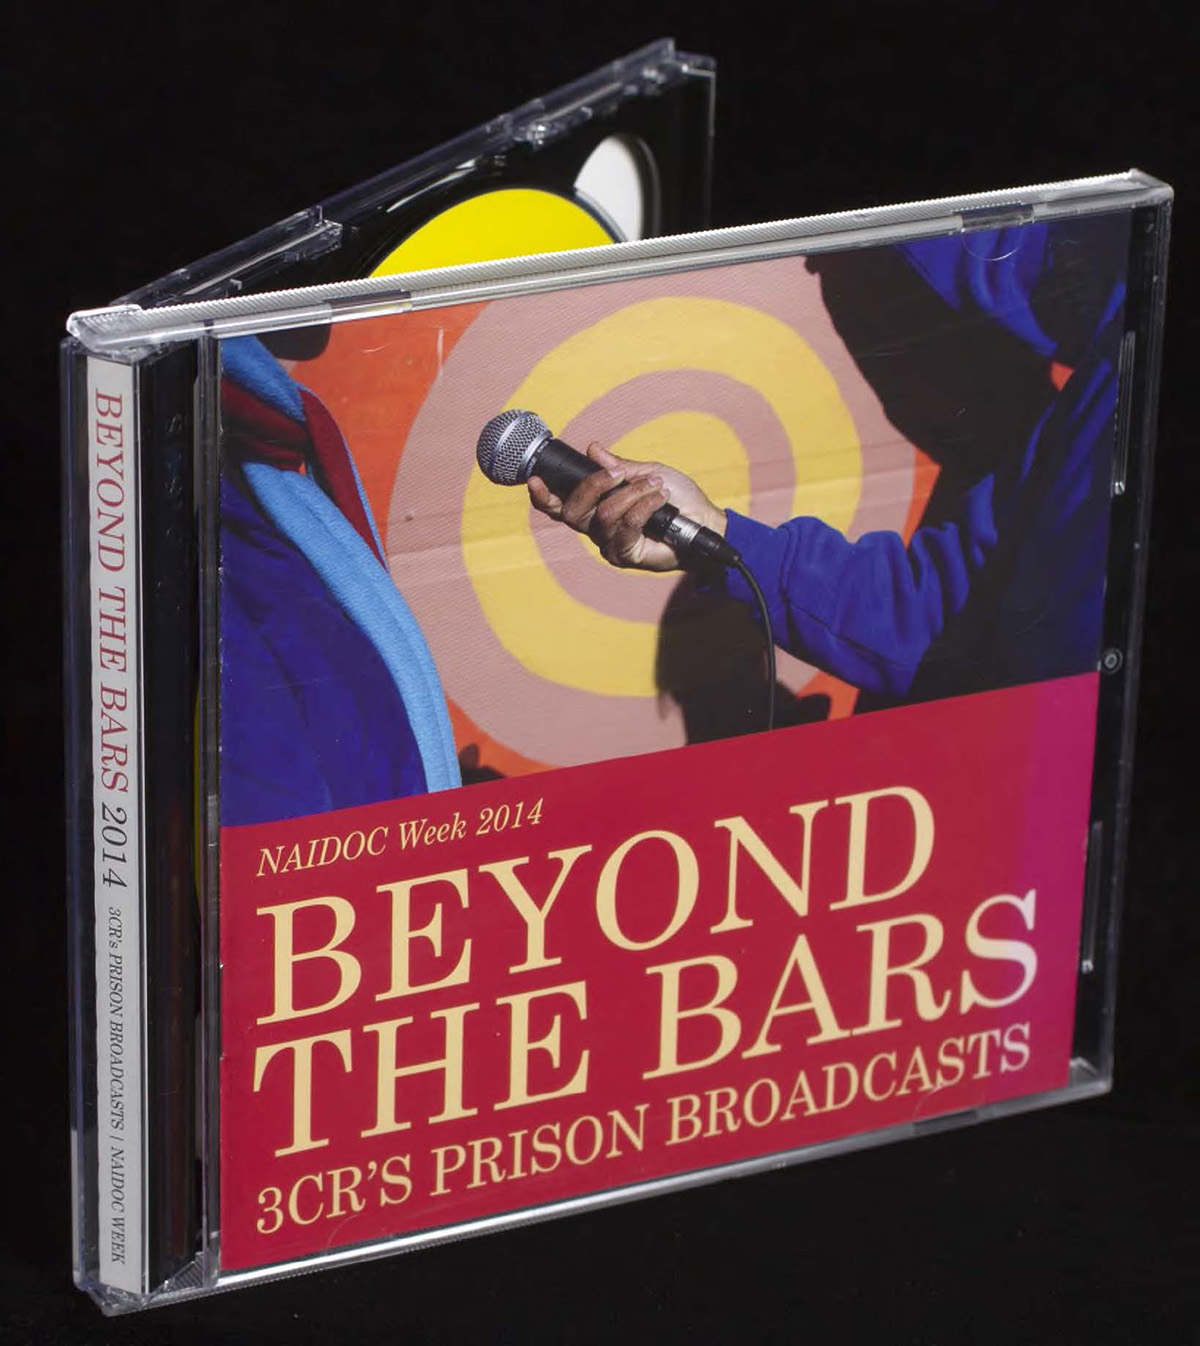 CD cover for Beyond the Bars 2014, with a person in a hoodie interviewing another person in front of a colourful artwork